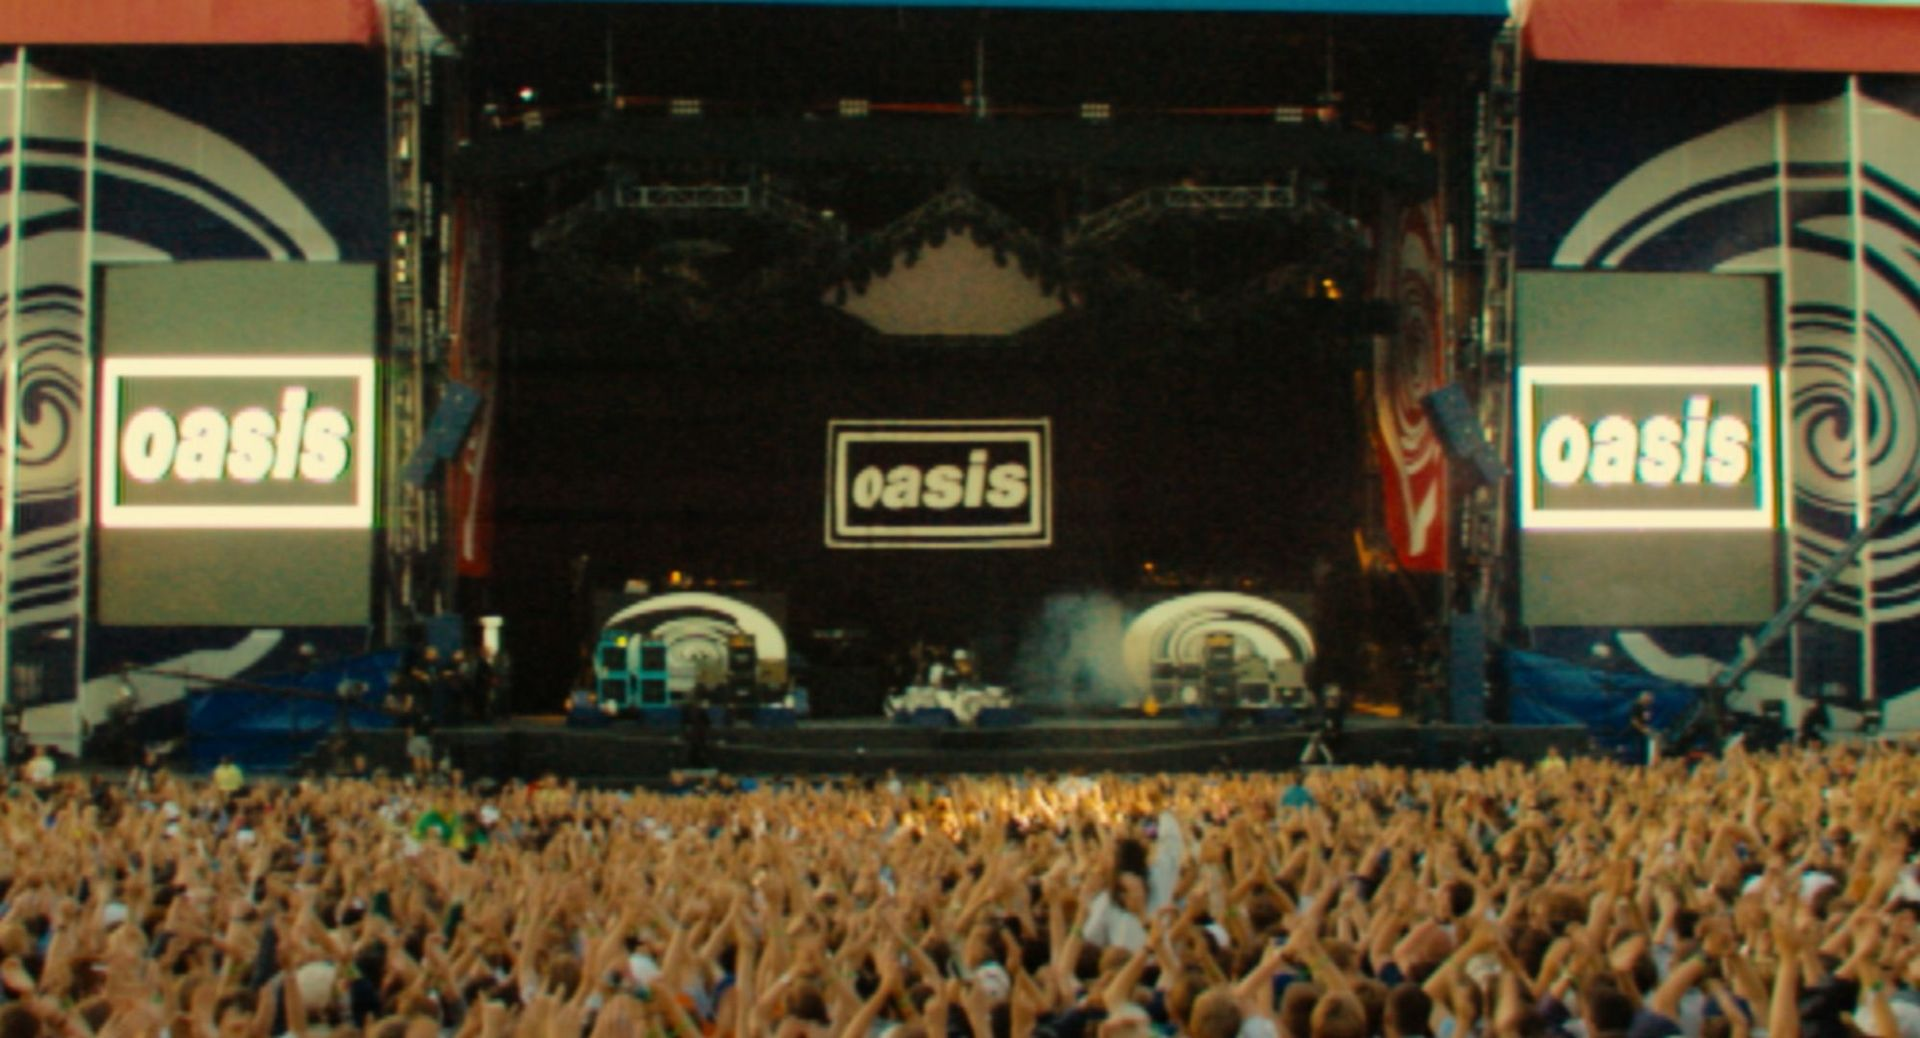 oasis-37-crowd-at-knebworth-copyright-ignition